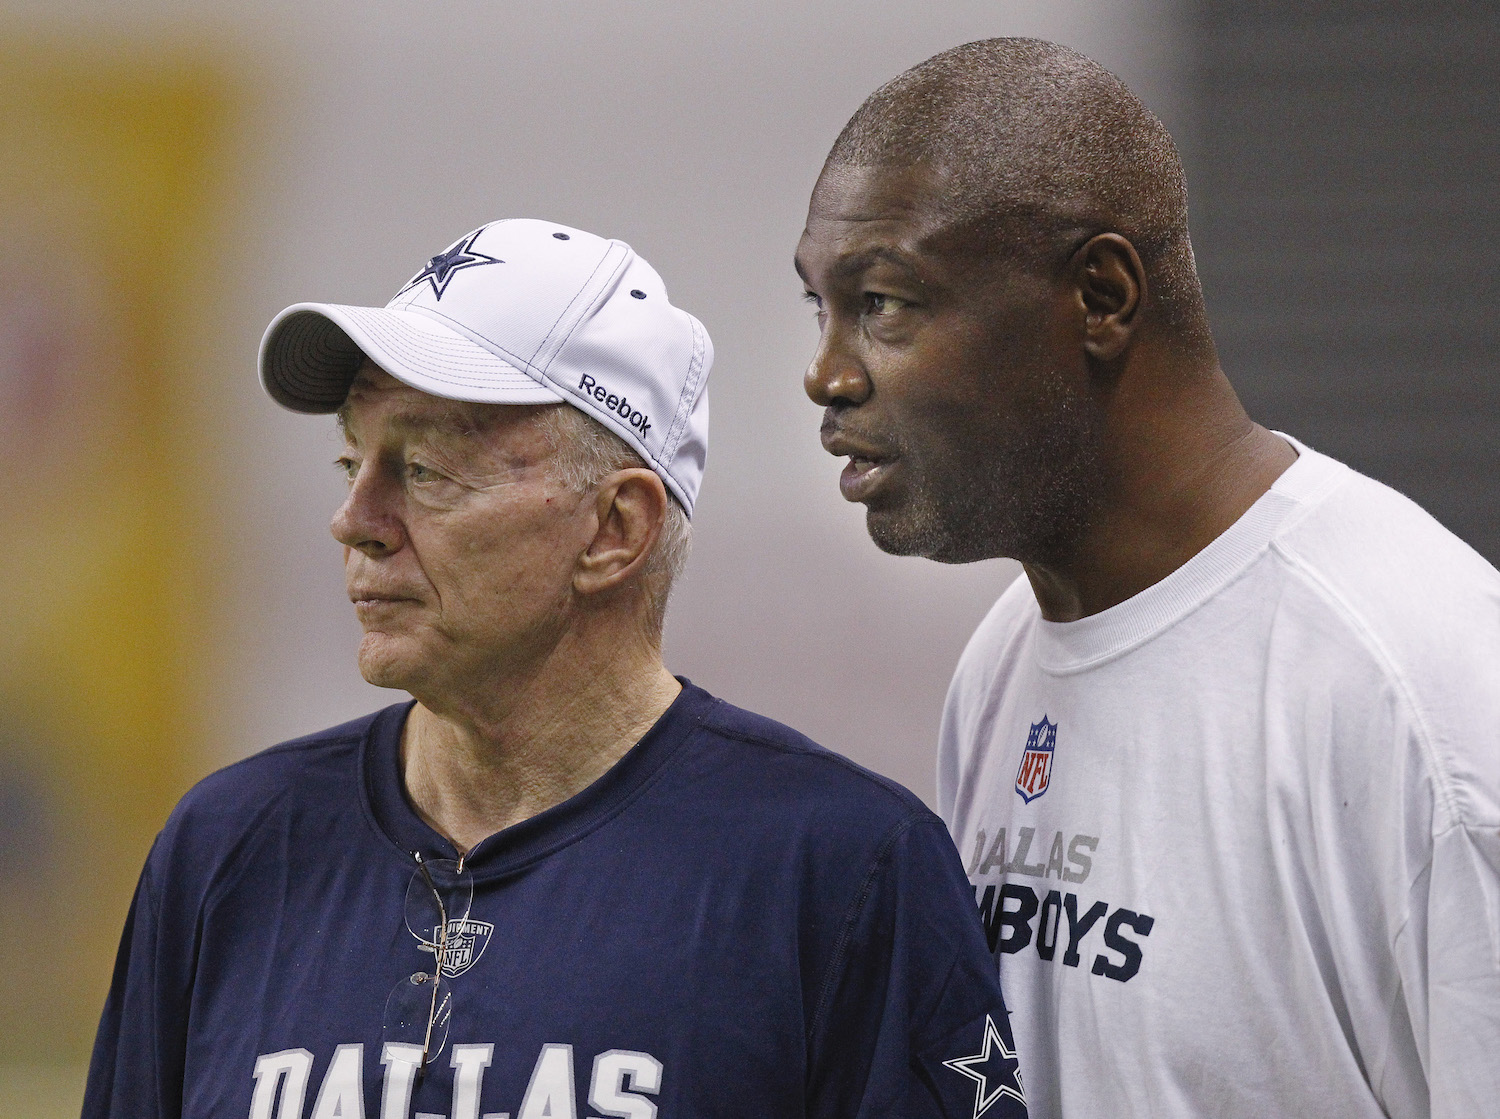 Dallas Cowboys owner Jerry Jones and Charles Haley